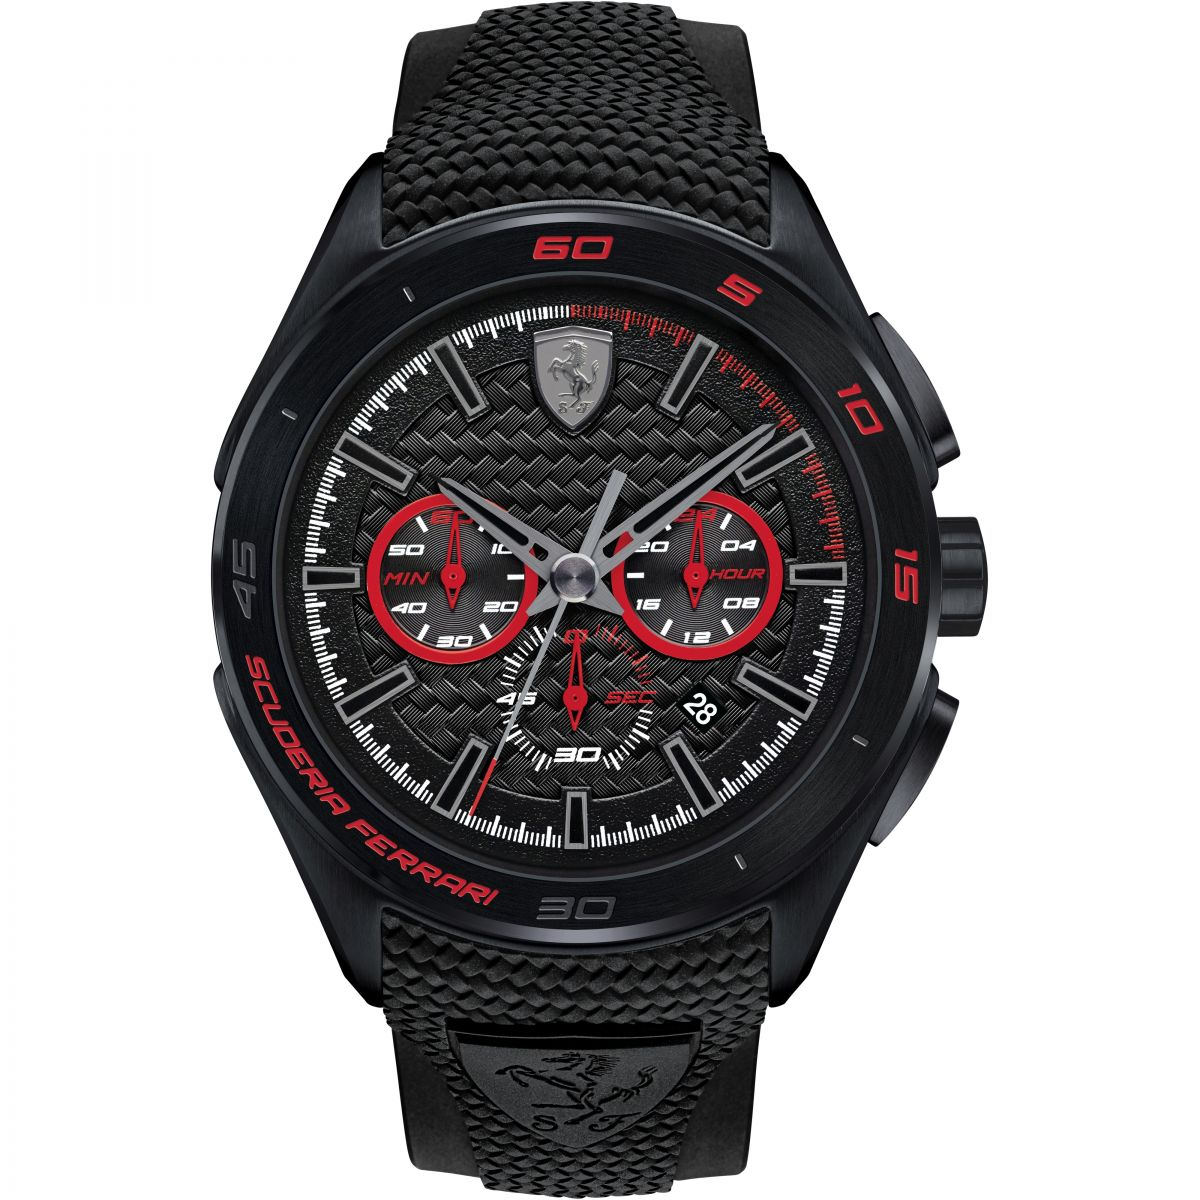 watch islamabad evo pakistan chronograph s lahore watches redrev scuderia replica men ferrari in karachi